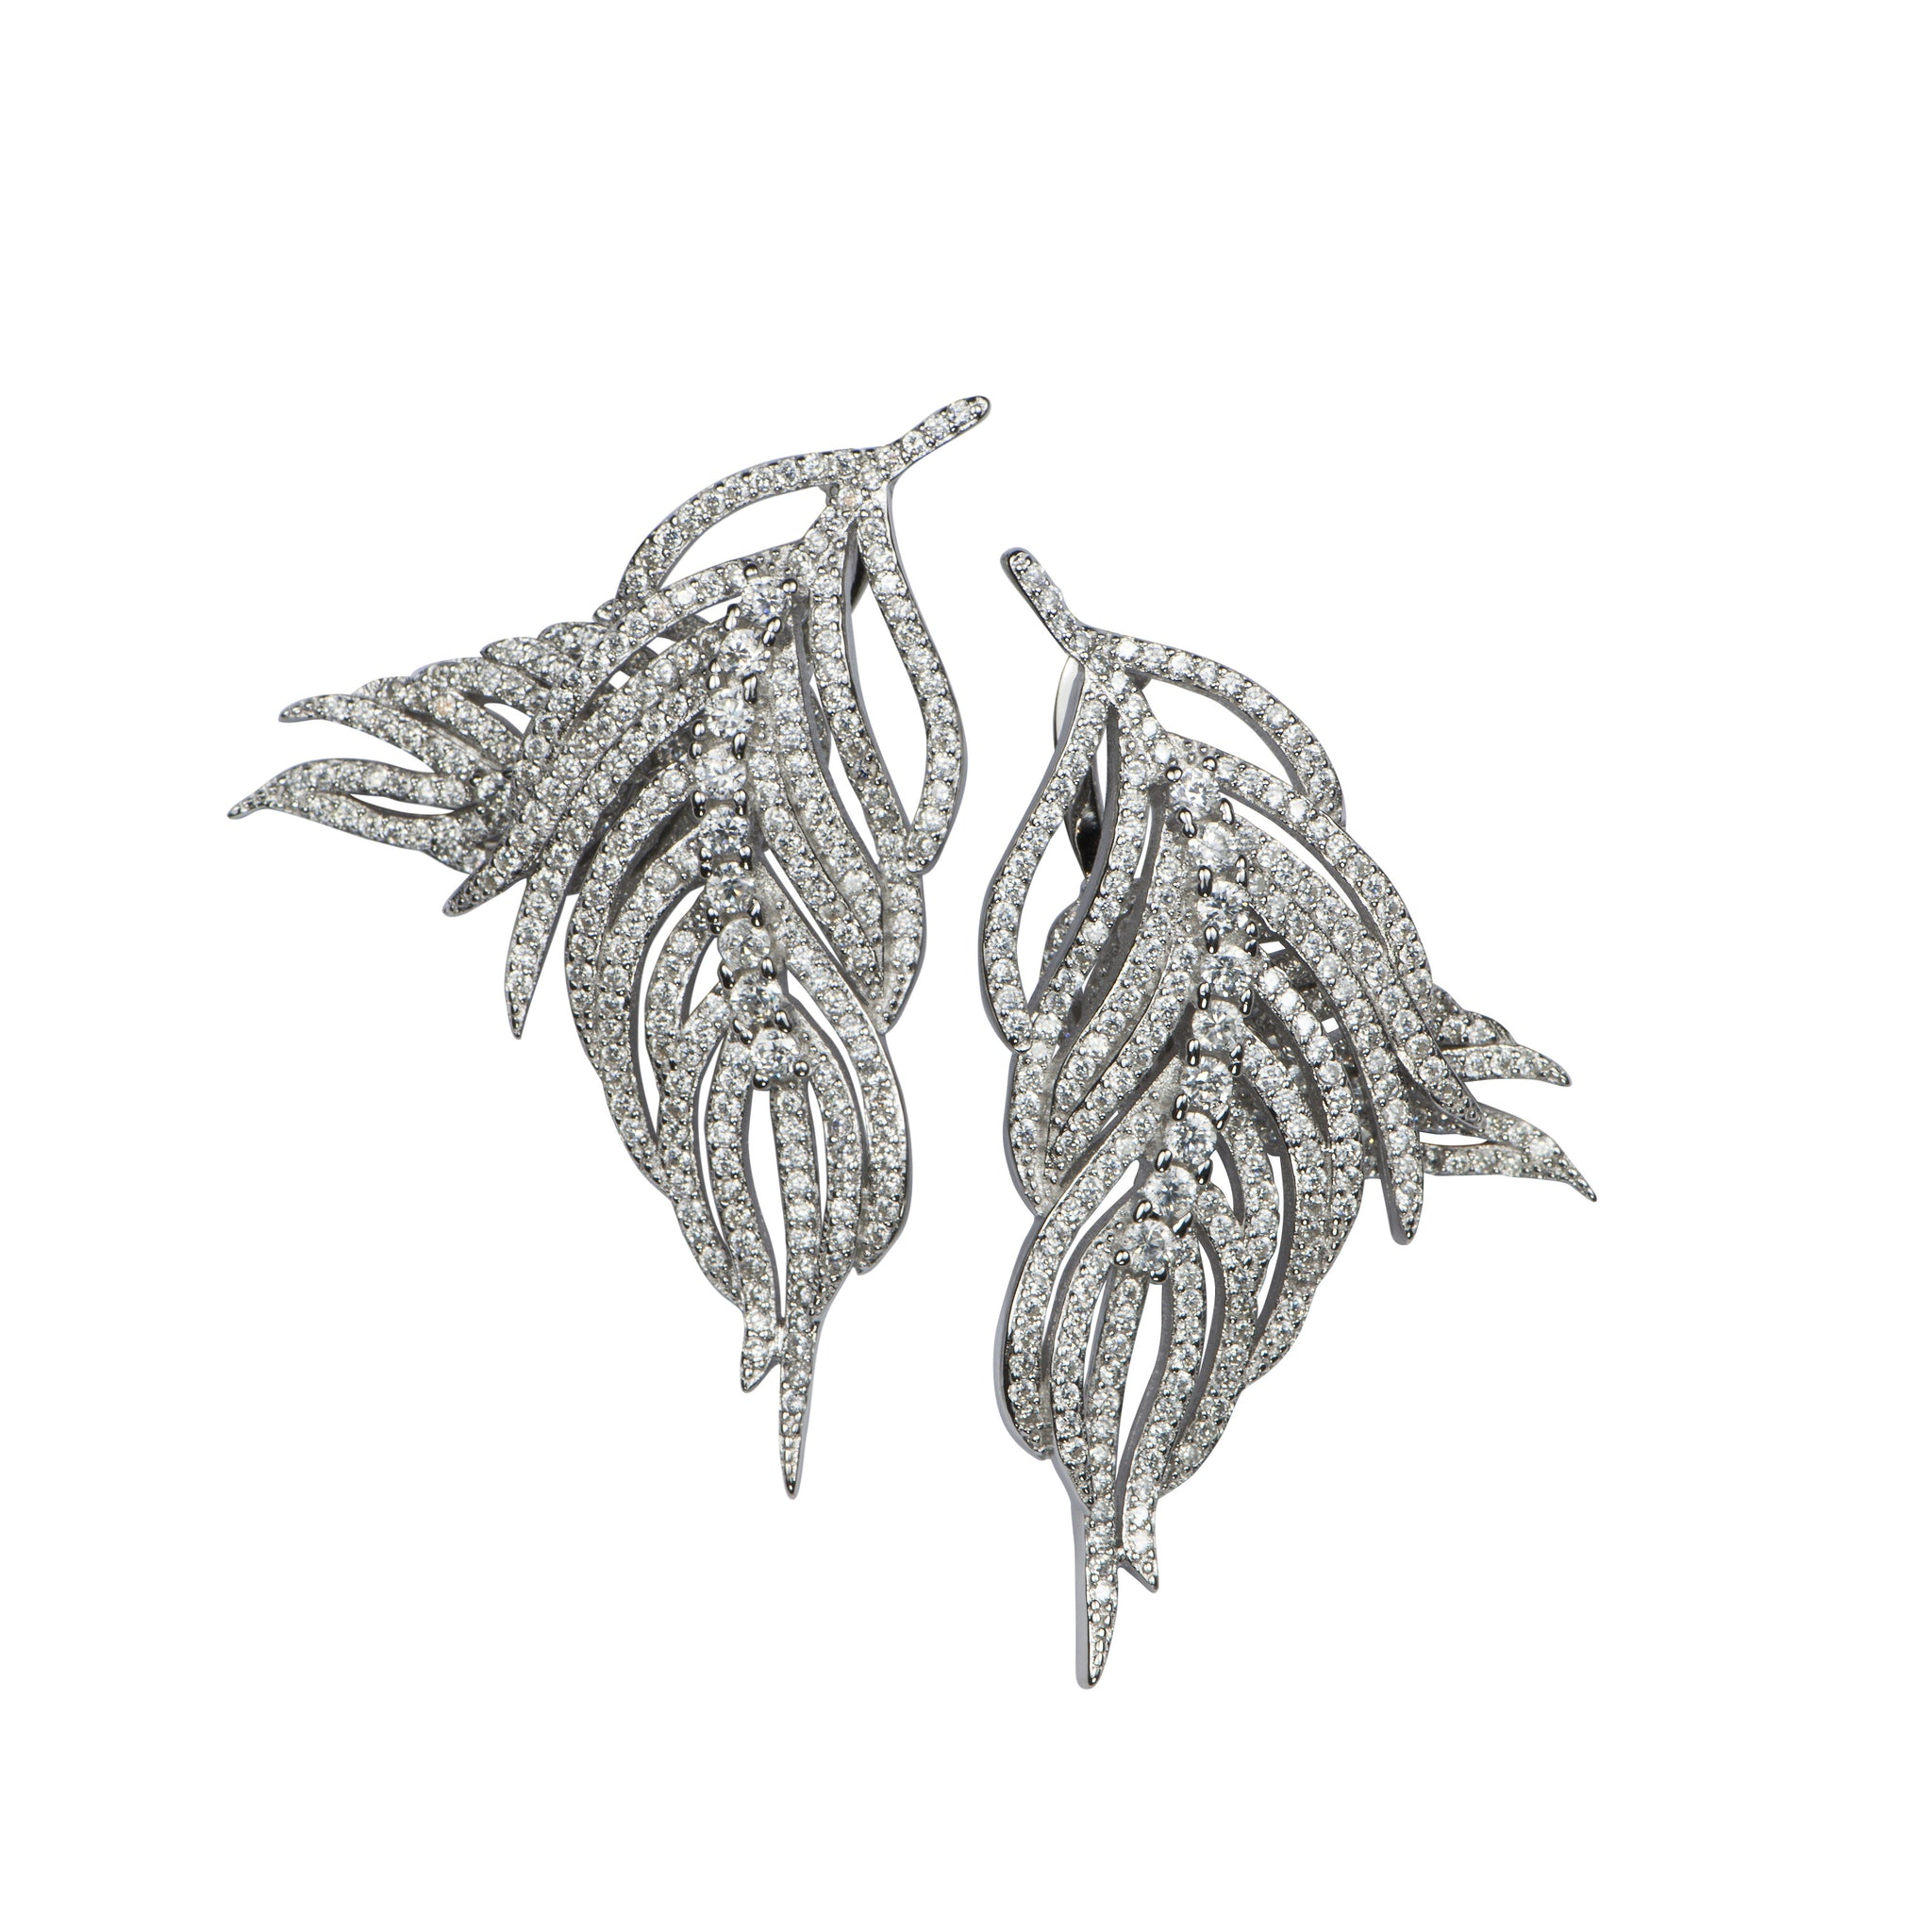 APPLES & FIGS - HERMES FEATHER EARRINGS